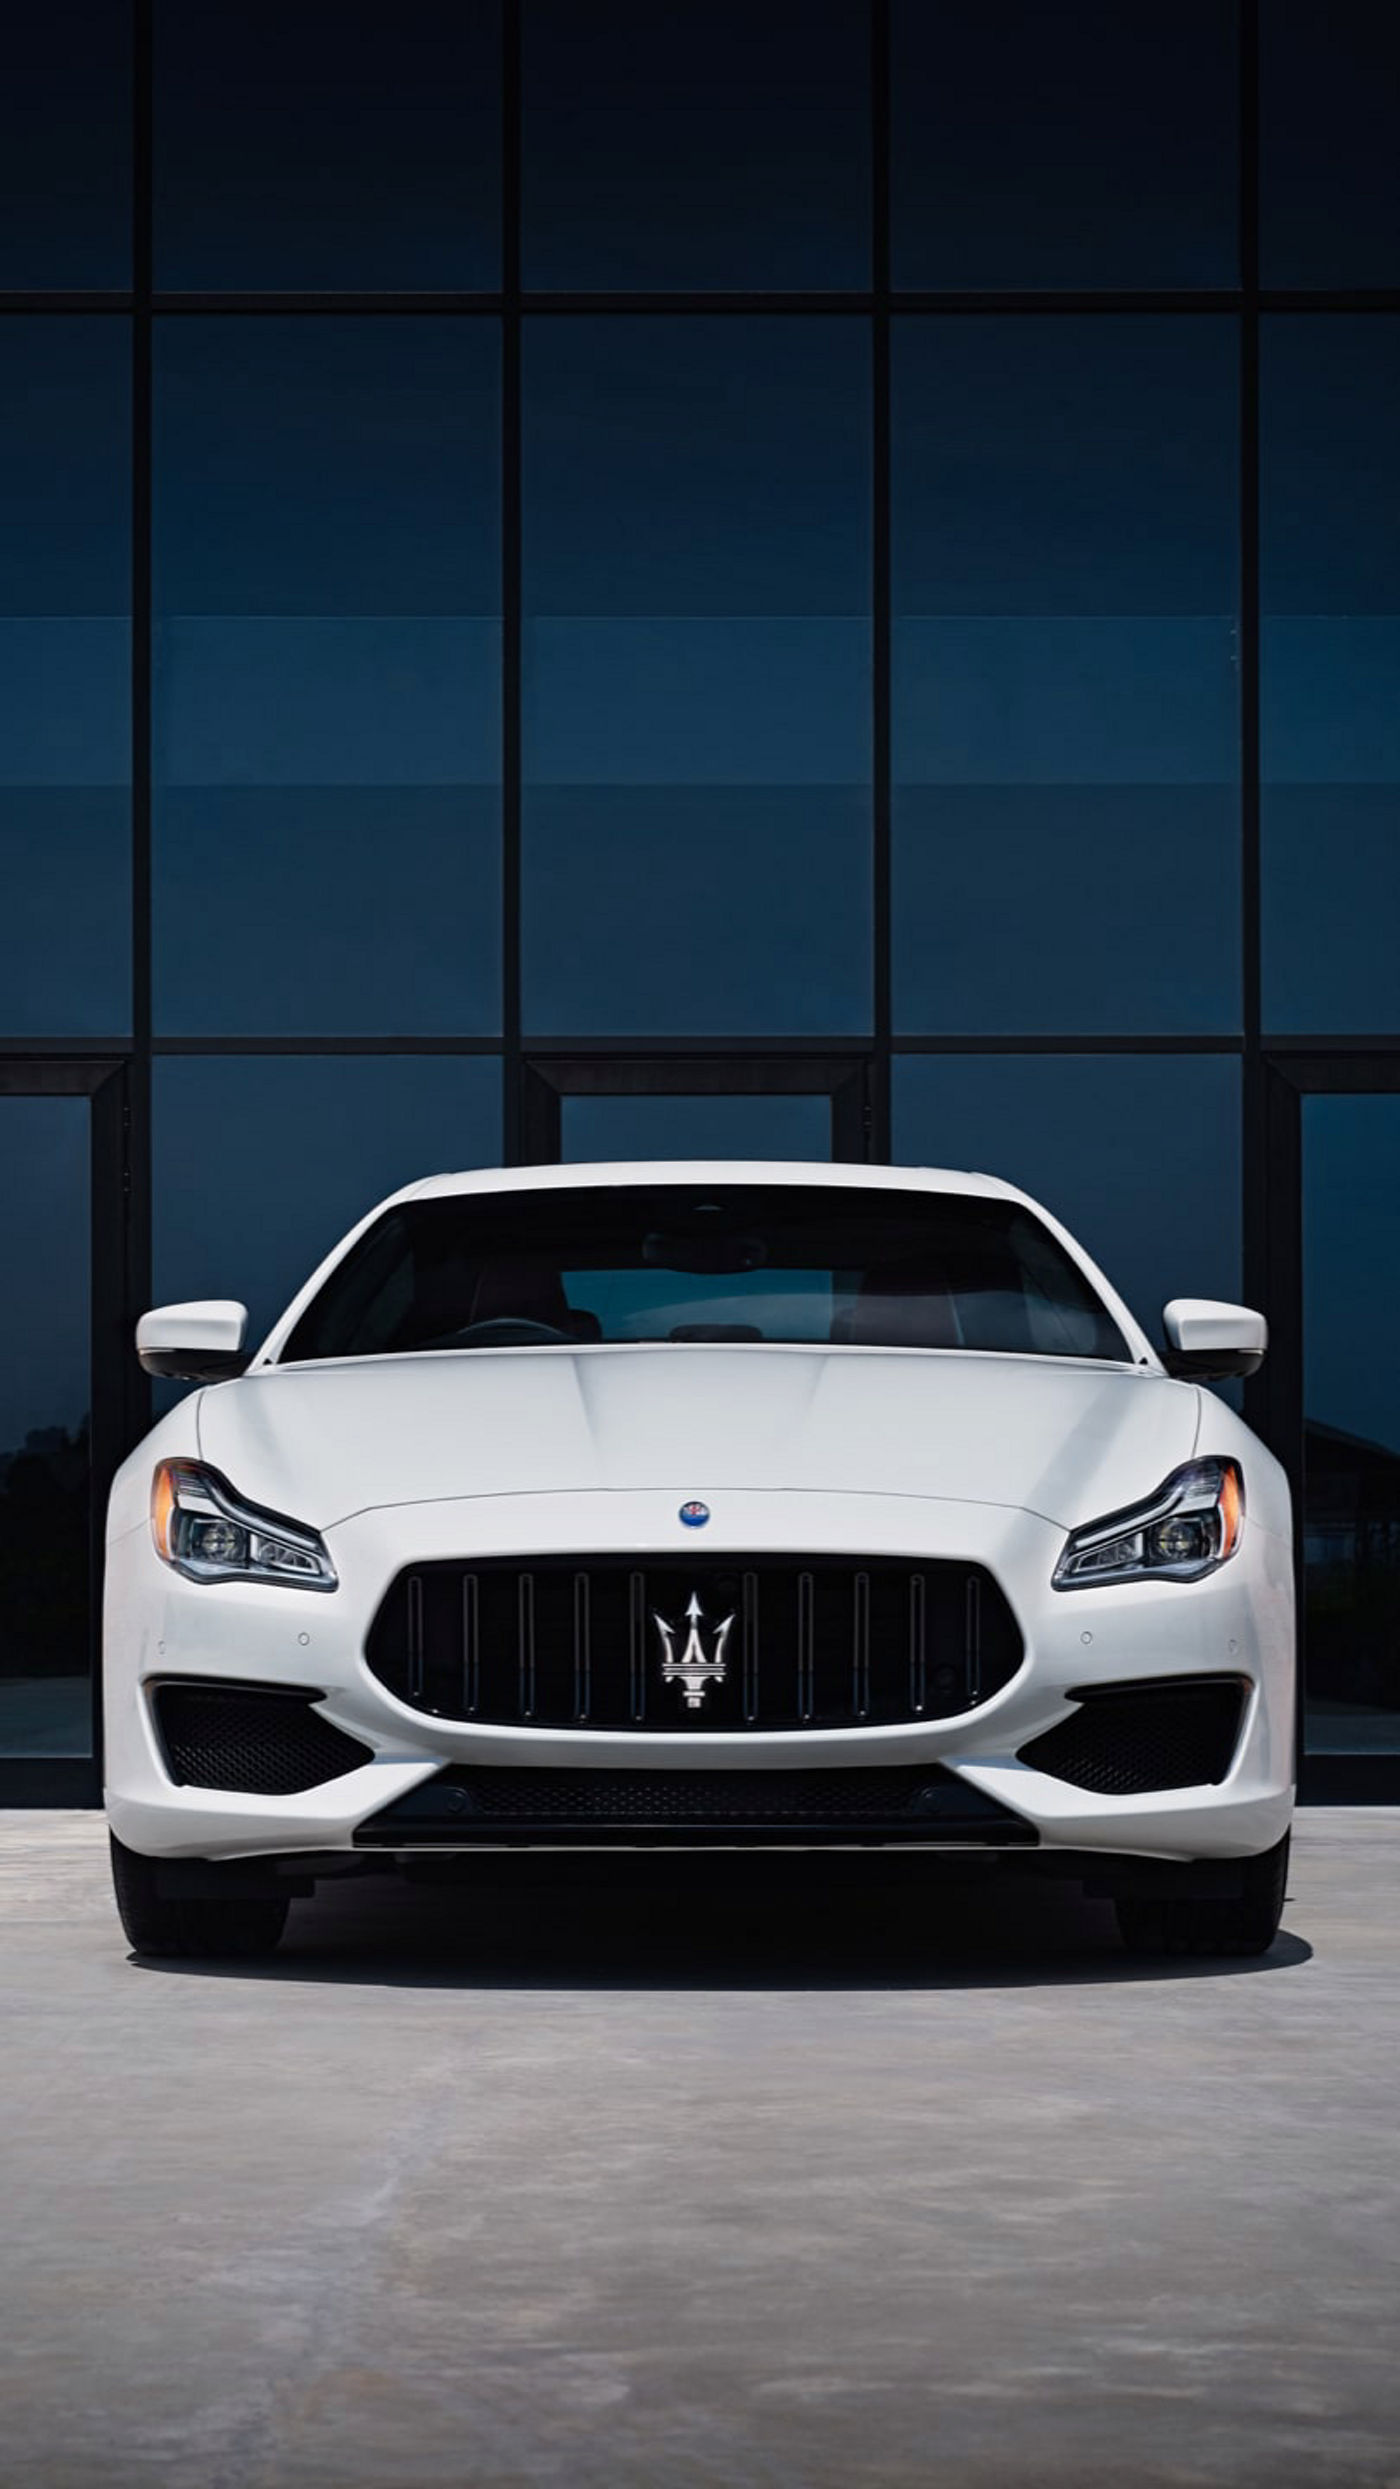 Maserati Quattroporte in front of a modern house, front view